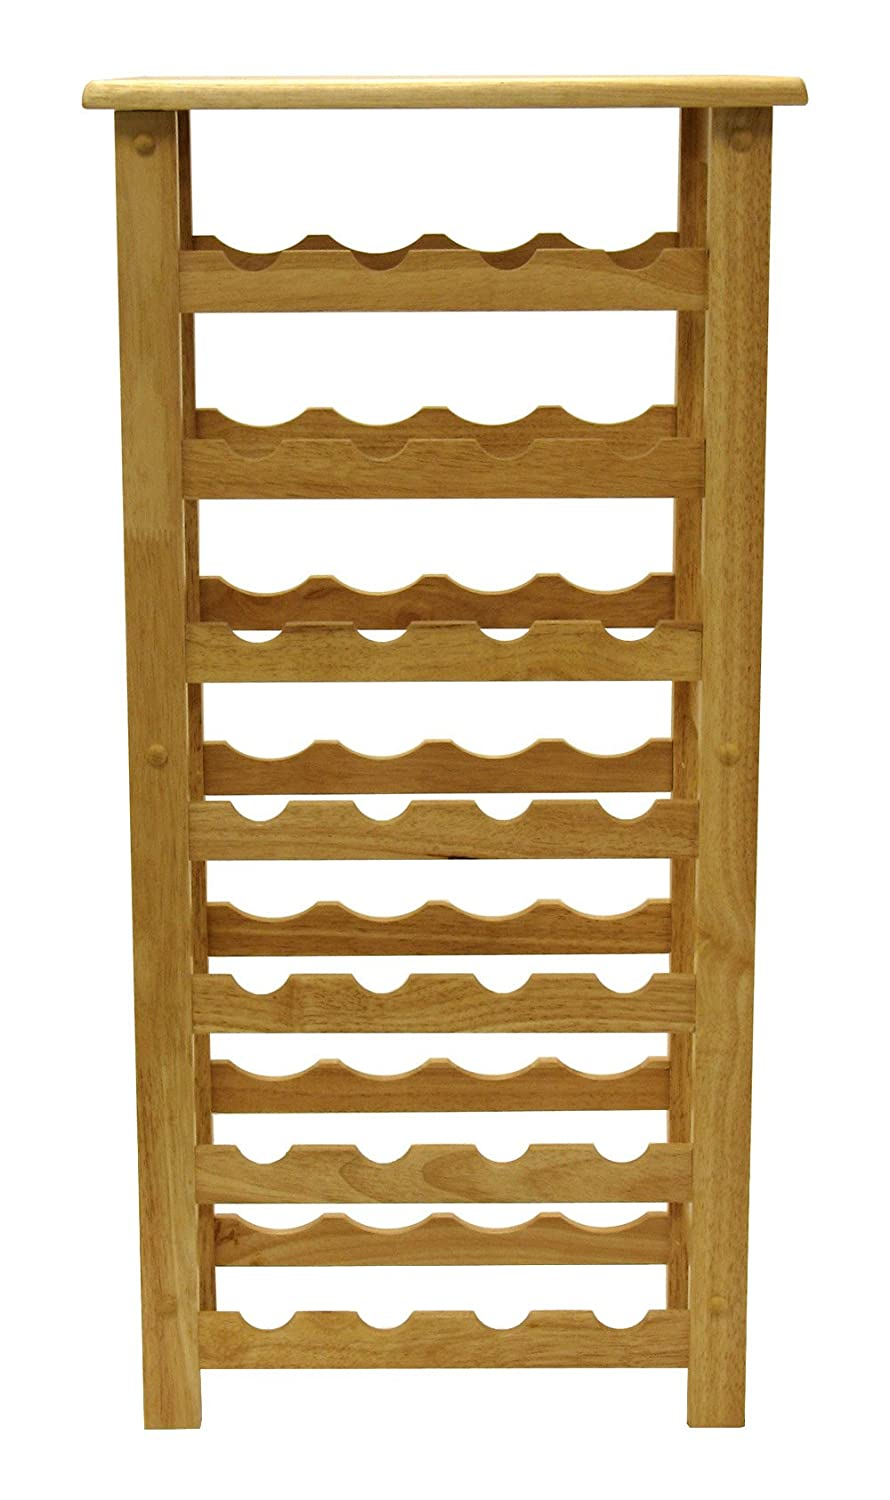 Winsome Wood 28 Bottle Wine Rack Natural Amazonca Home Kitchen